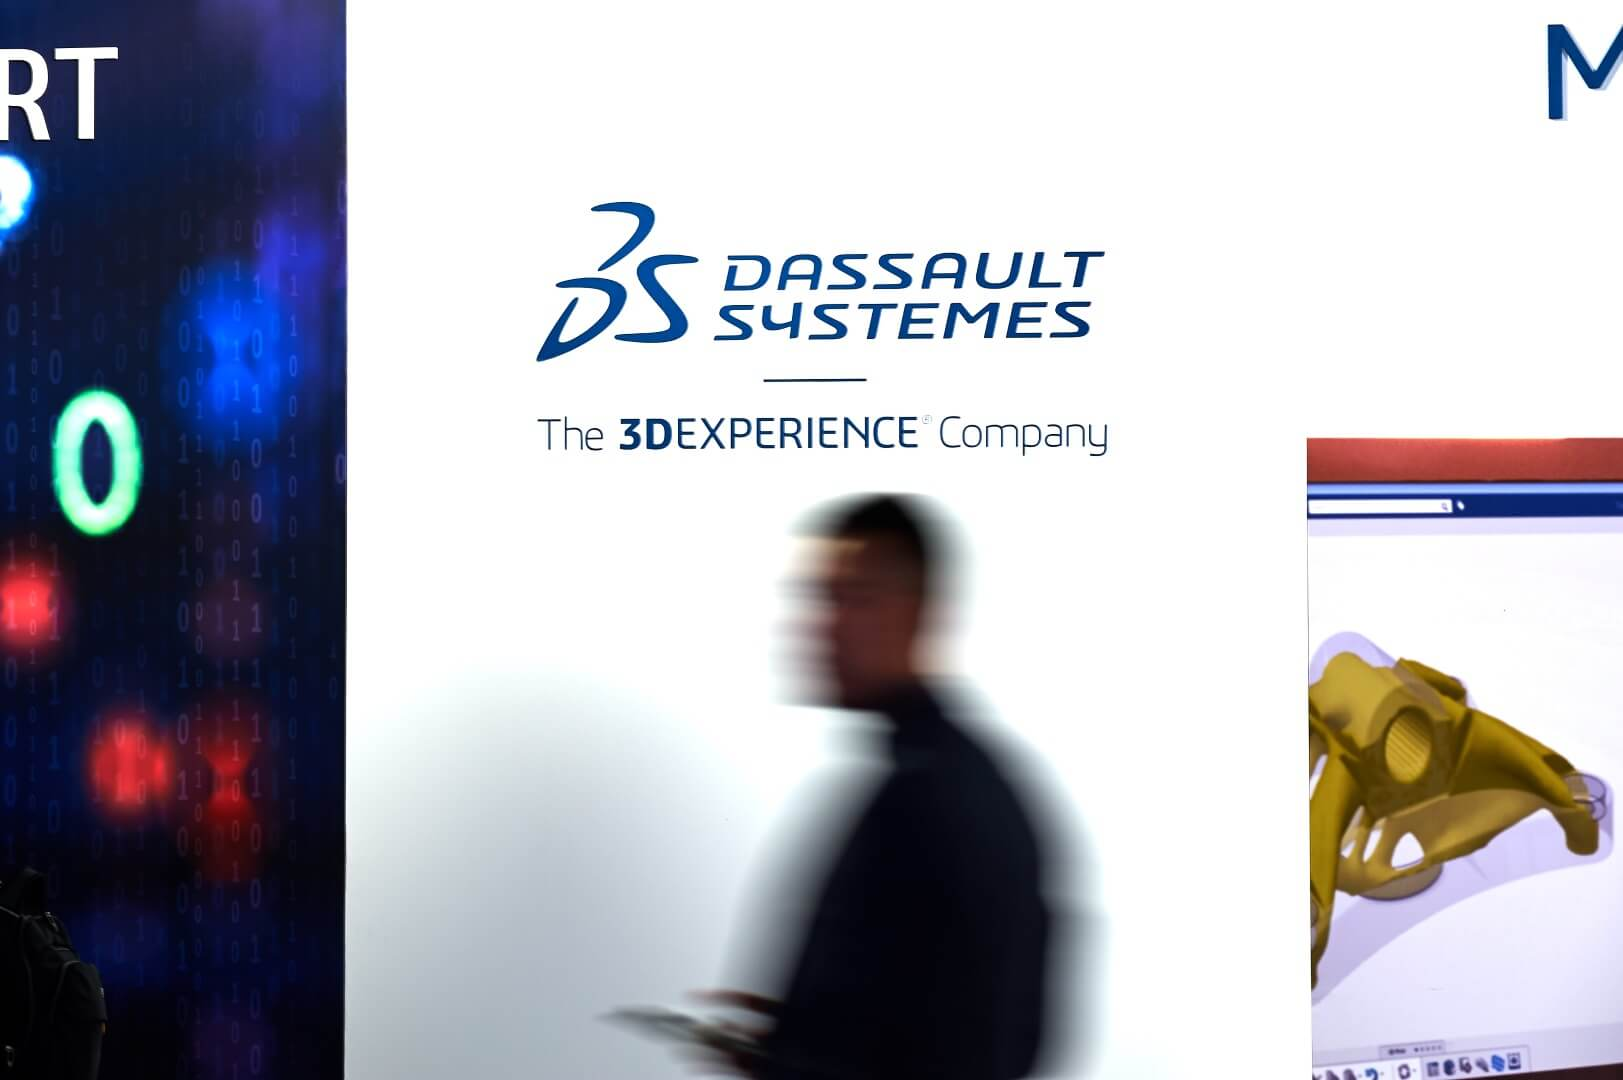 Dassault Systèmes - The 3DEXPERIENCE Company